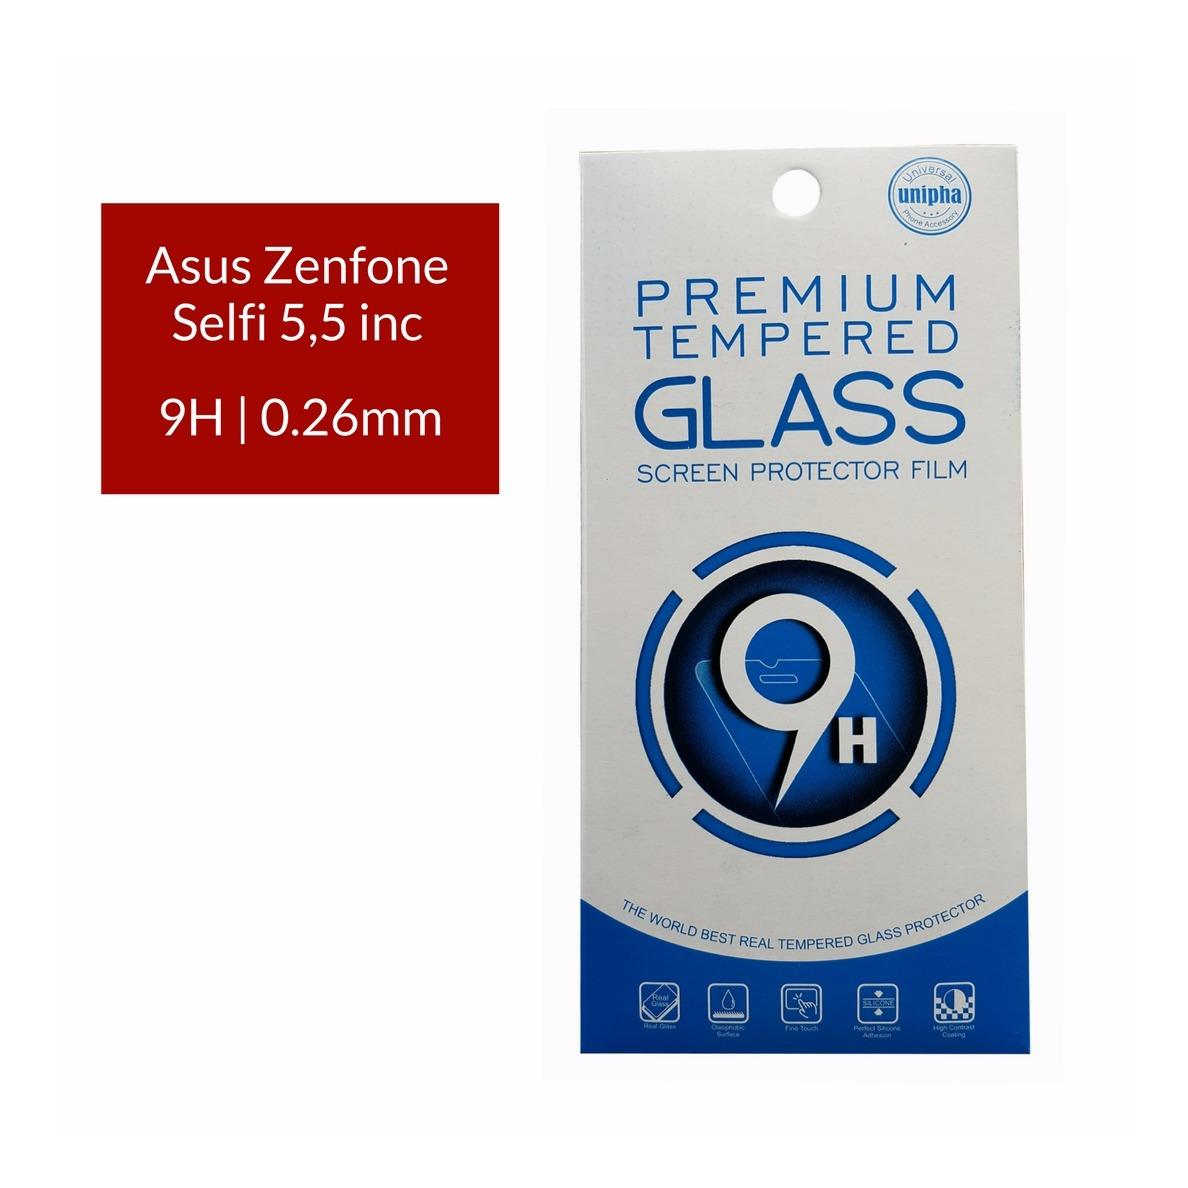 Unipha Premium Tempered Glass Screen Protector / Anti Gores Kaca ASUS Zenfone Selfi 5,5 inc  - Bening